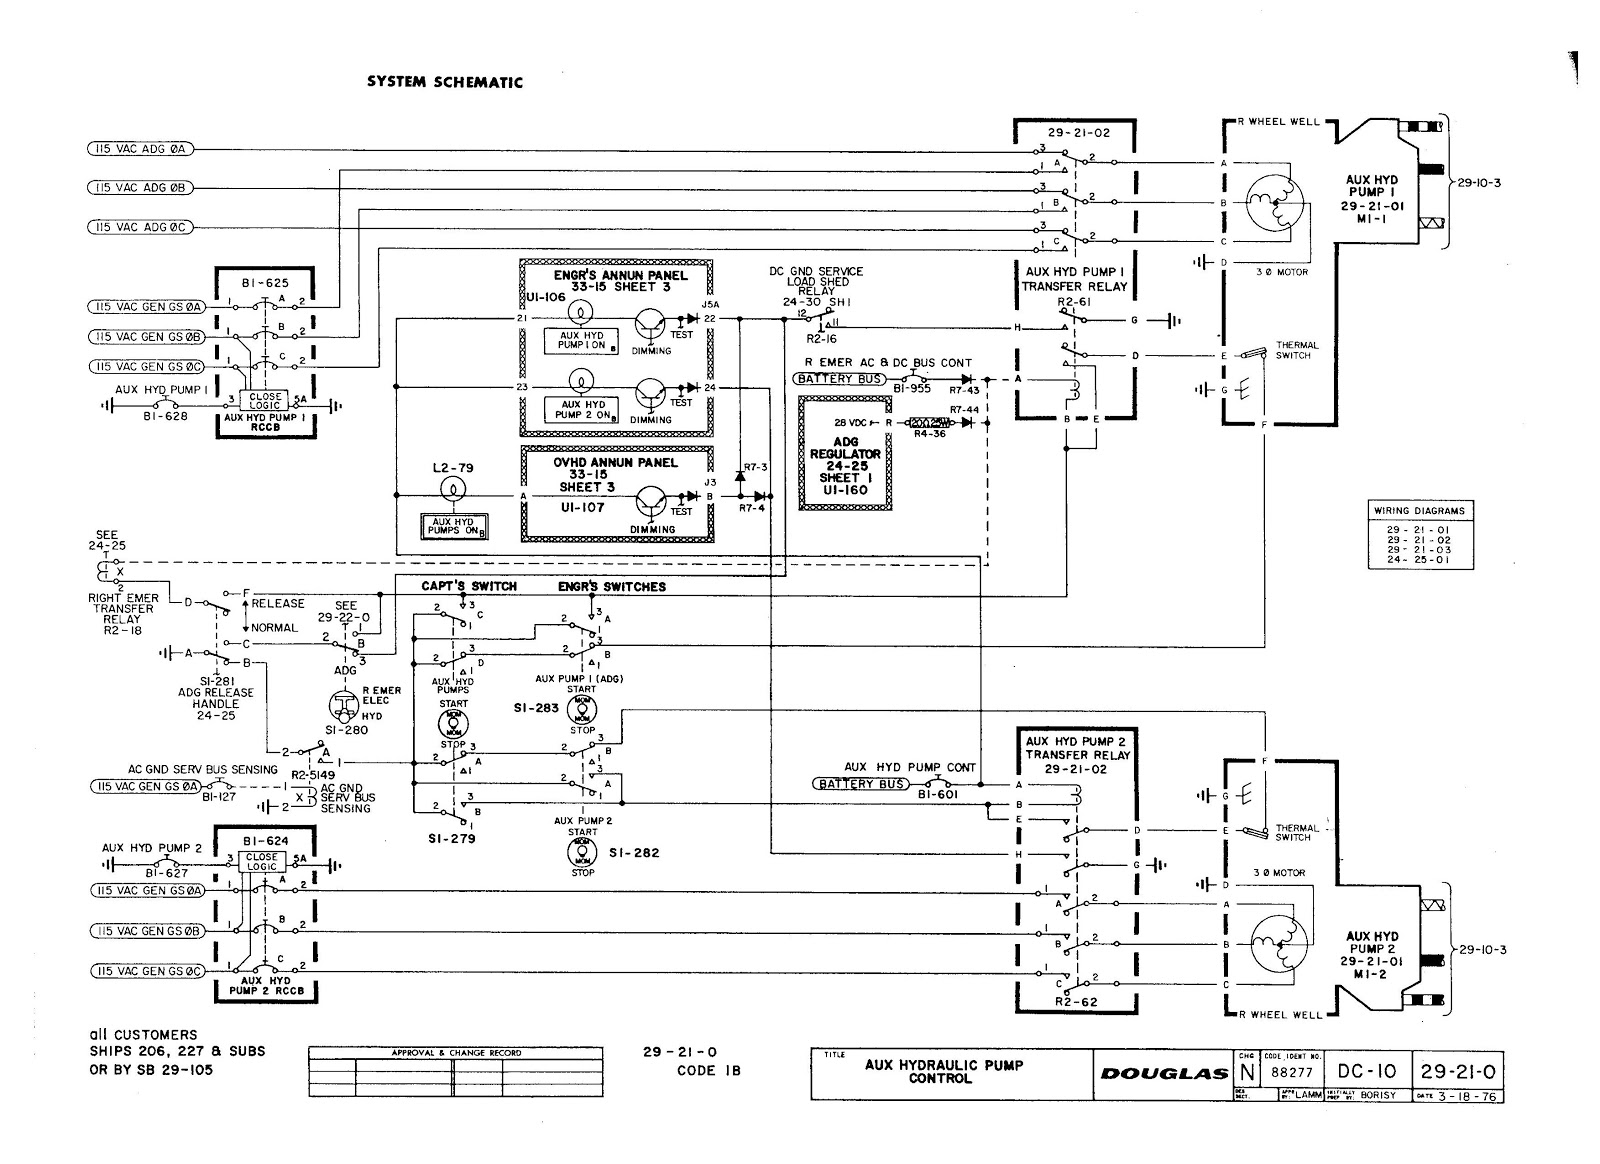 Boeing 727 Wiring Diagram Opinions About Mercmonitor B737 Manual Schematic 717 737